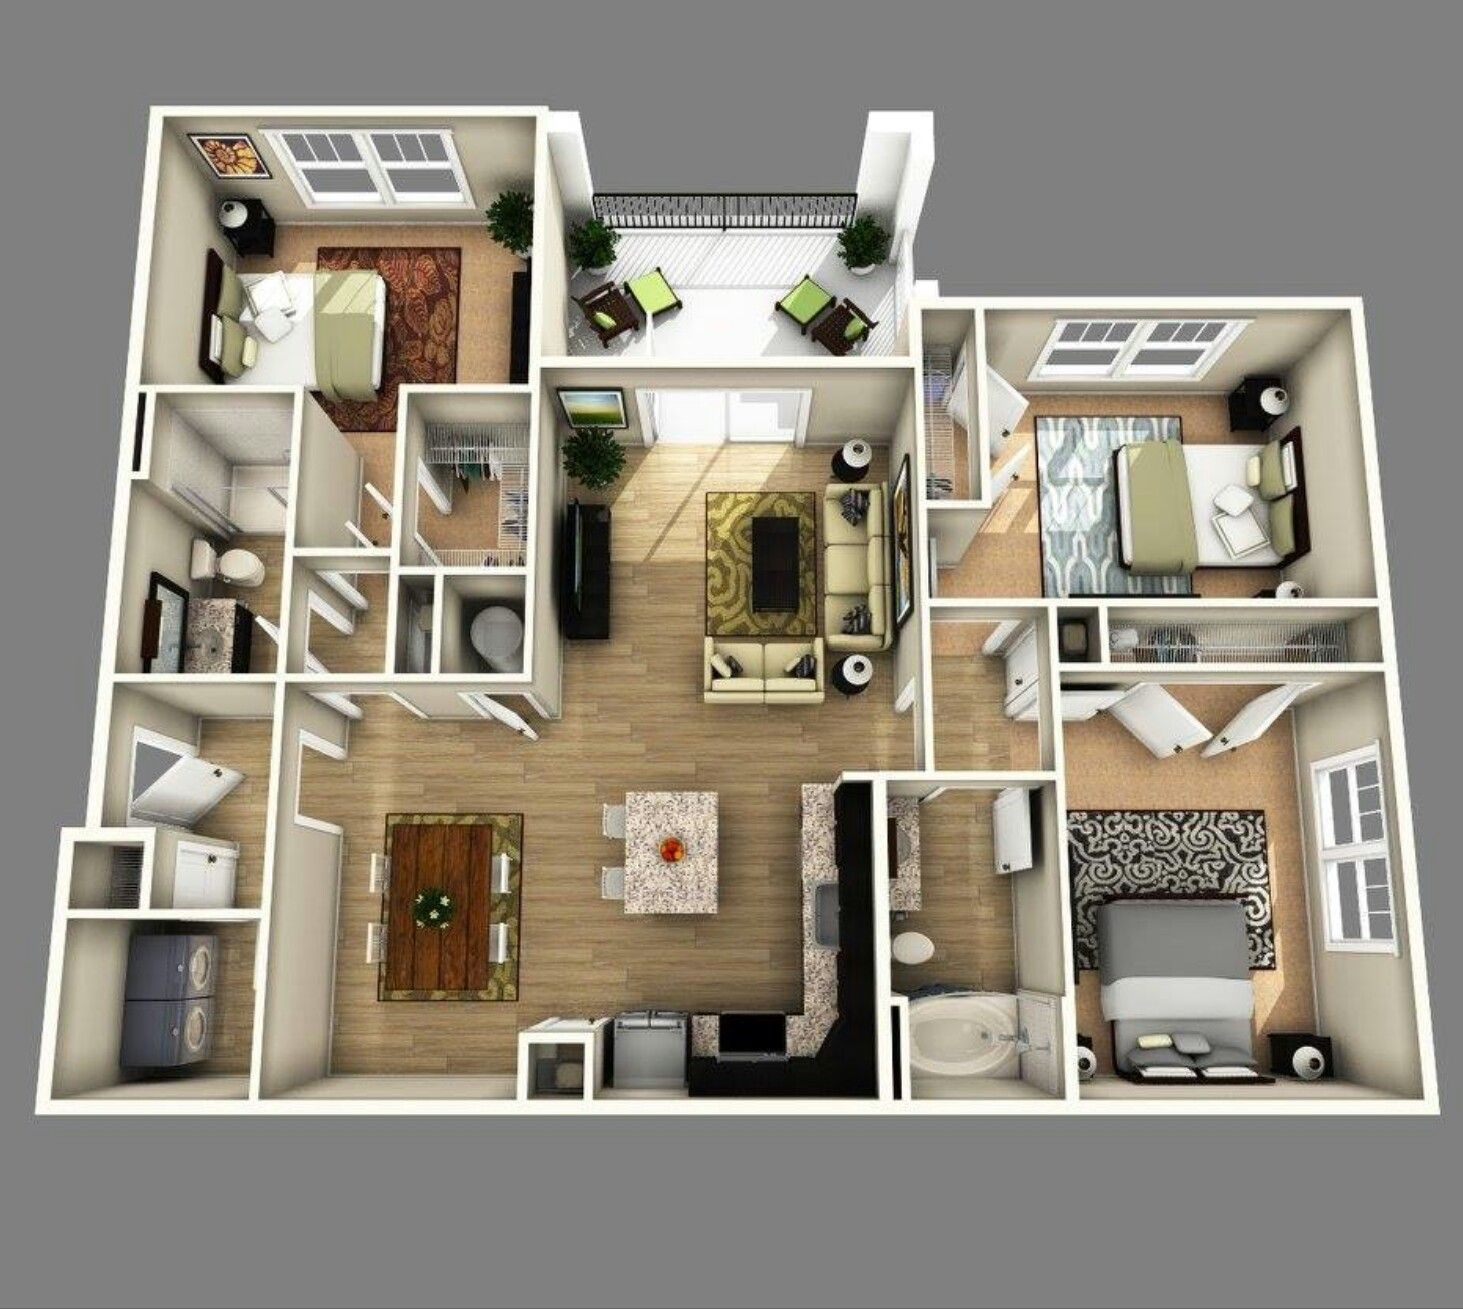 Ufufigigkviv Apartment floor plans, 3d house plans